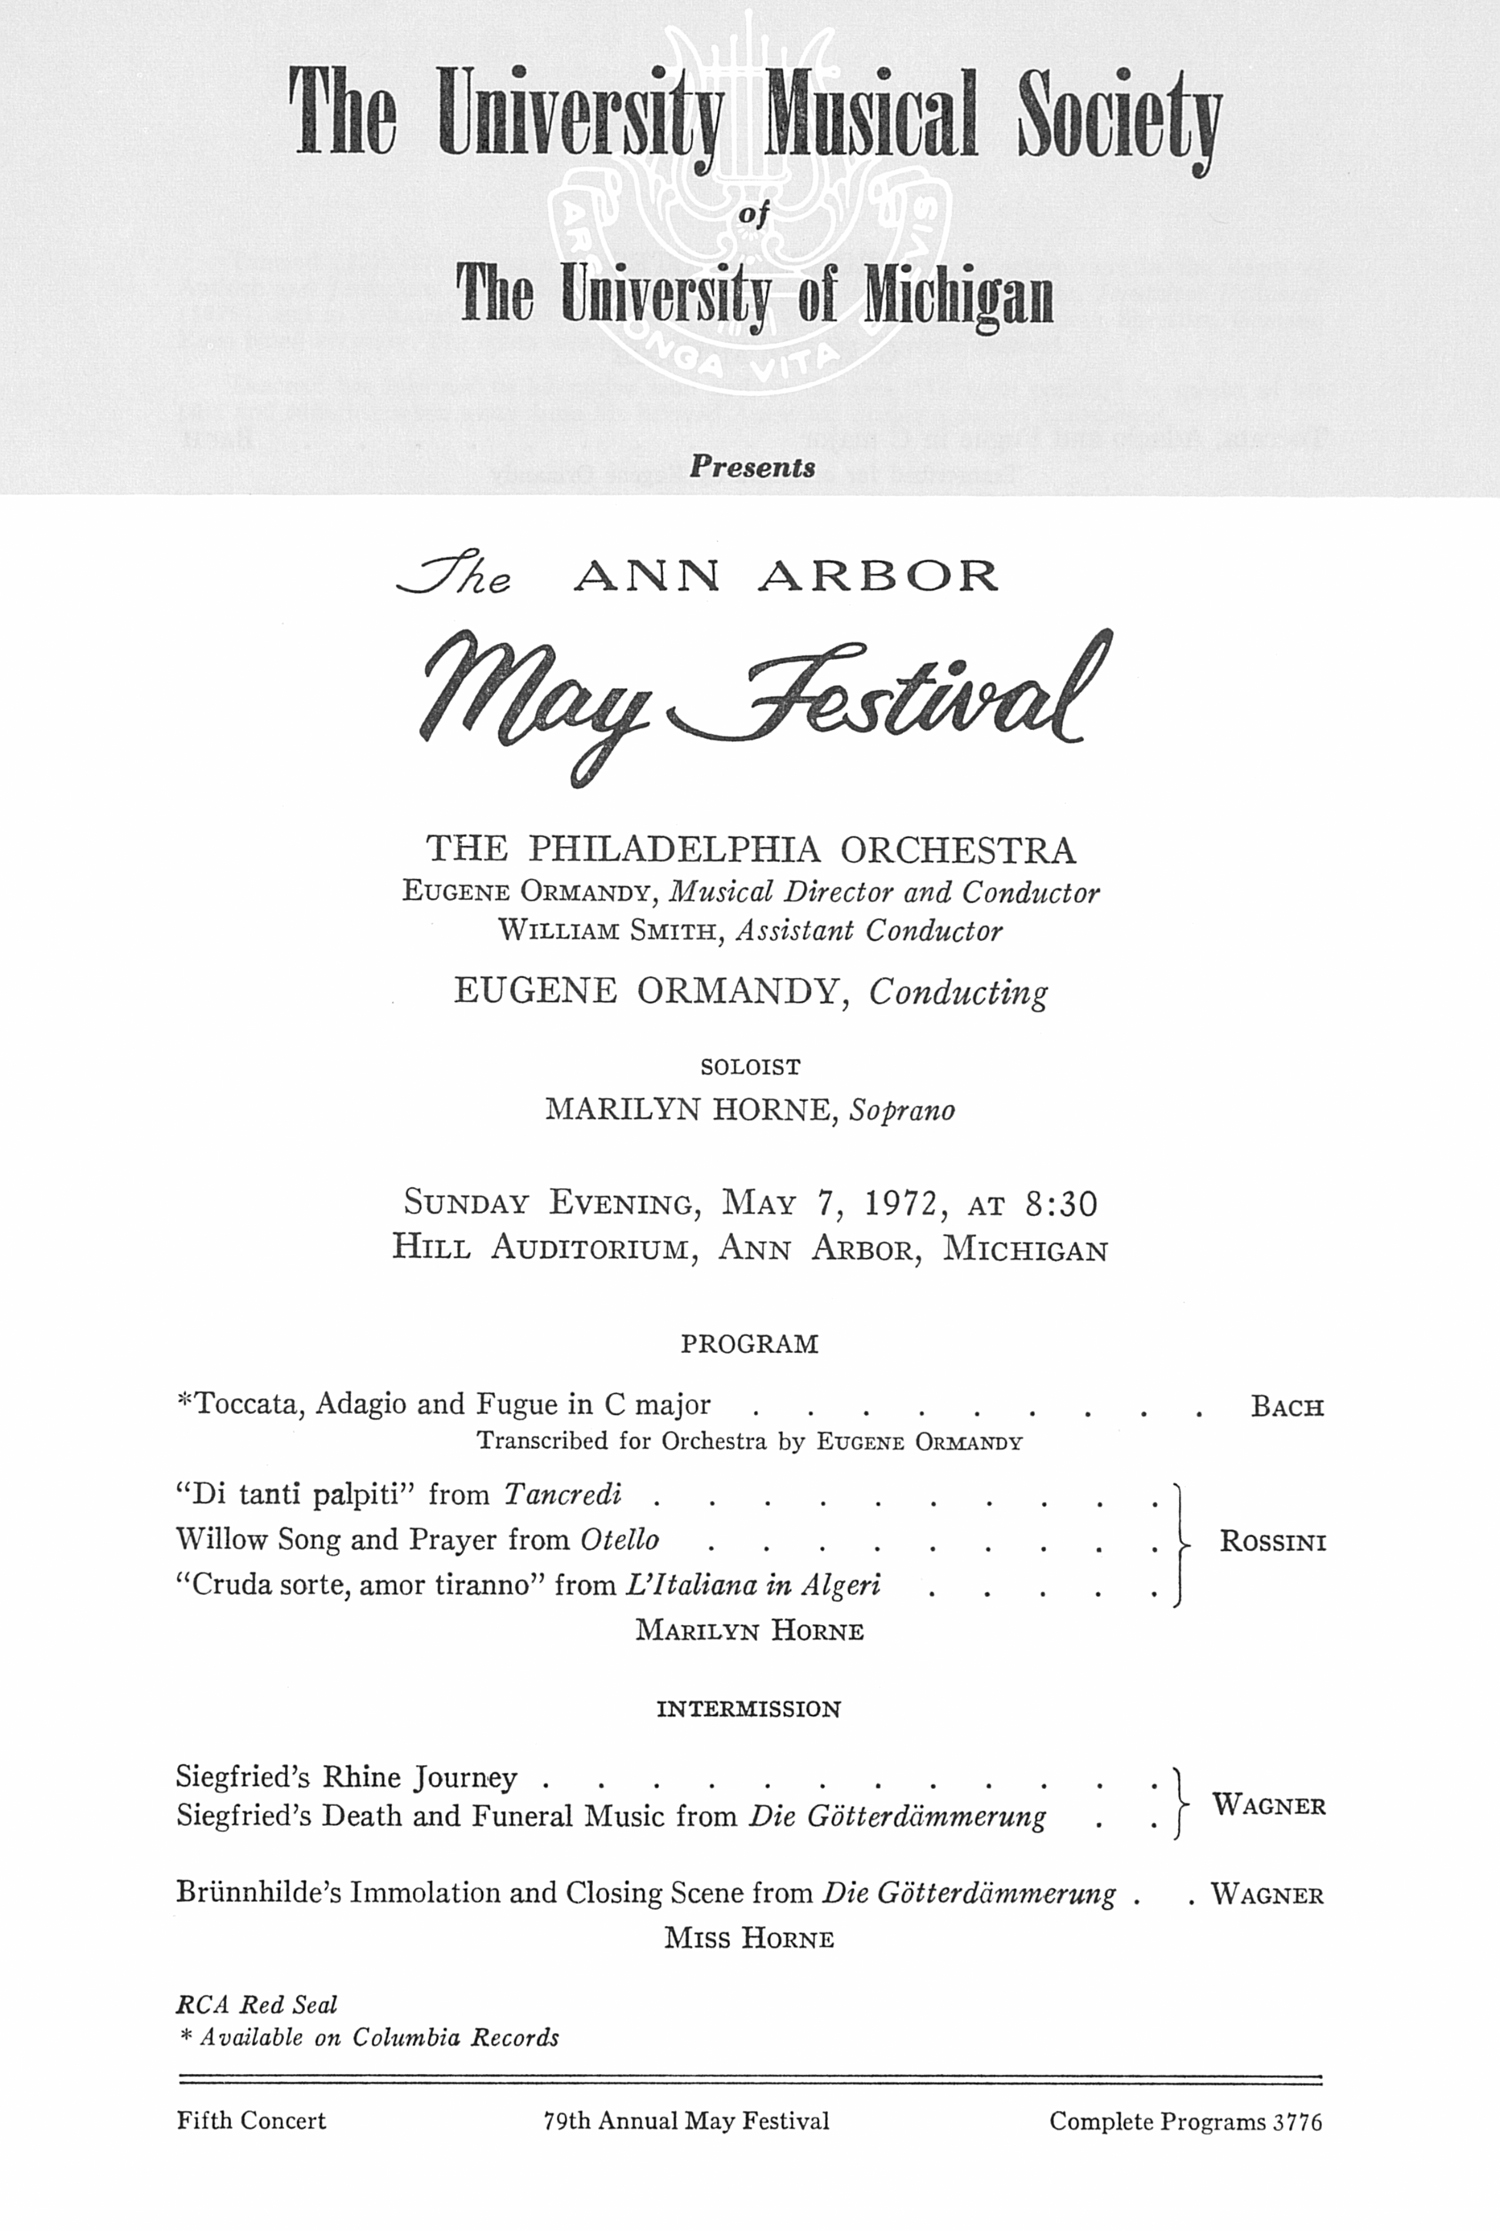 UMS Concert Program, May 7, 1972: The Ann Arbor May Festival -- The Philadelphia Orchestra image